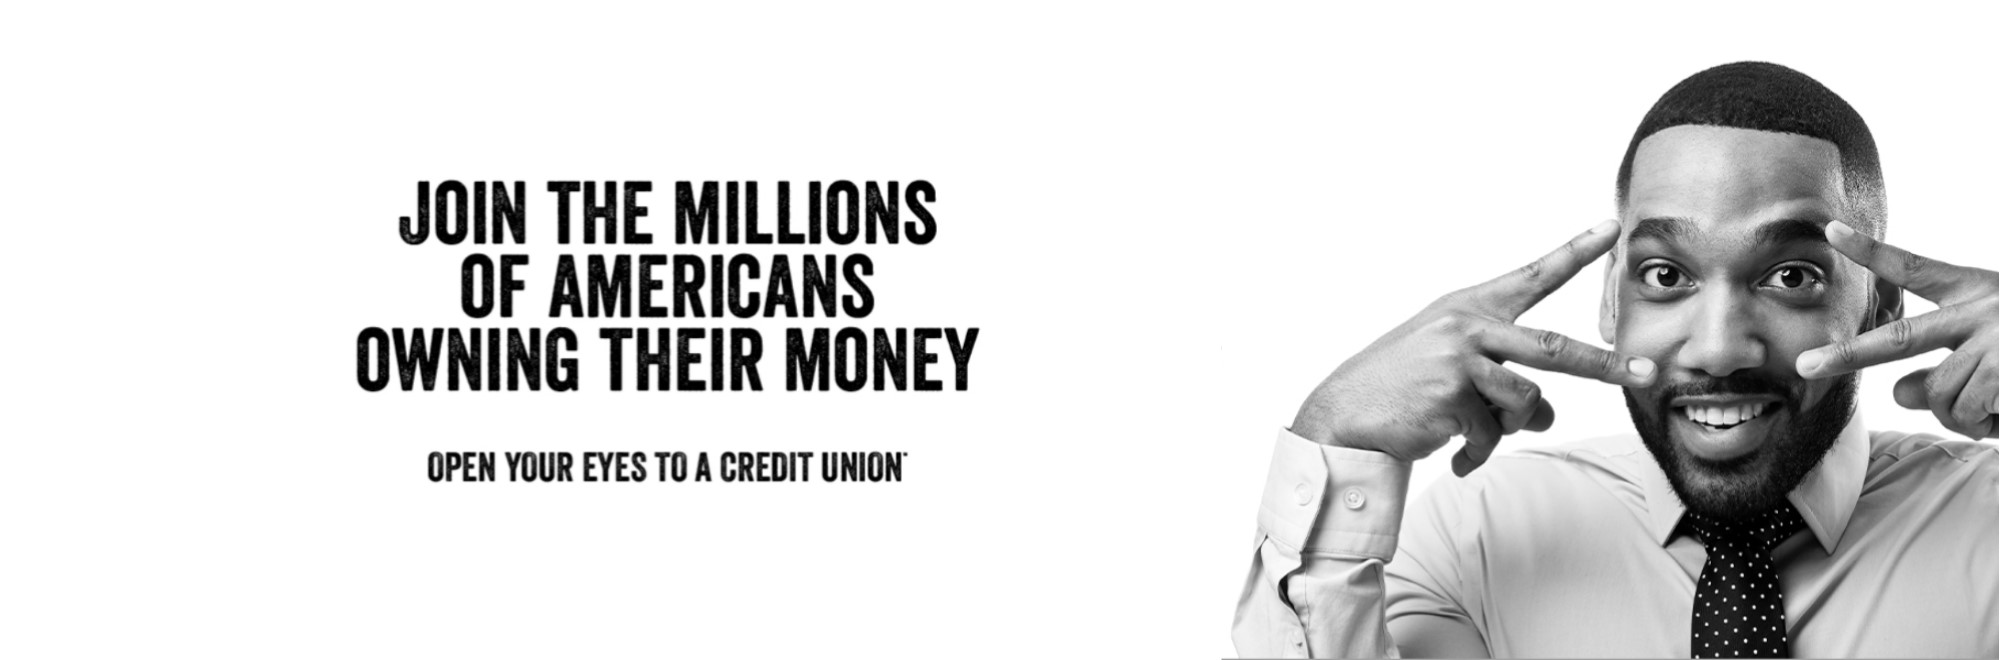 Join the millions of americans owning thier money.  Open your eyes to a credit union.